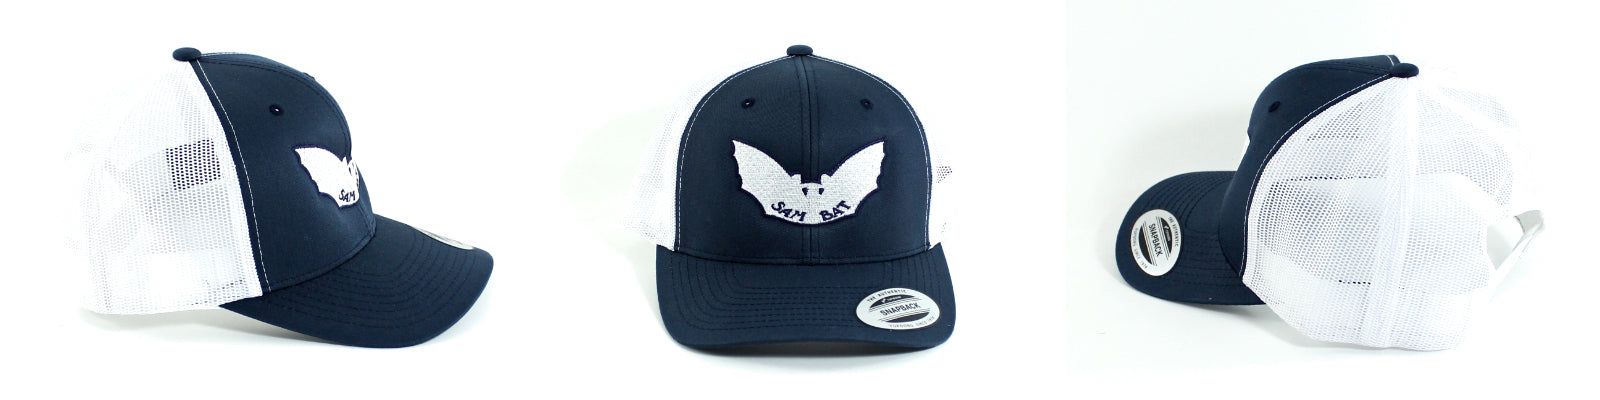 Sam Bat Retro Trucker - Navy/White